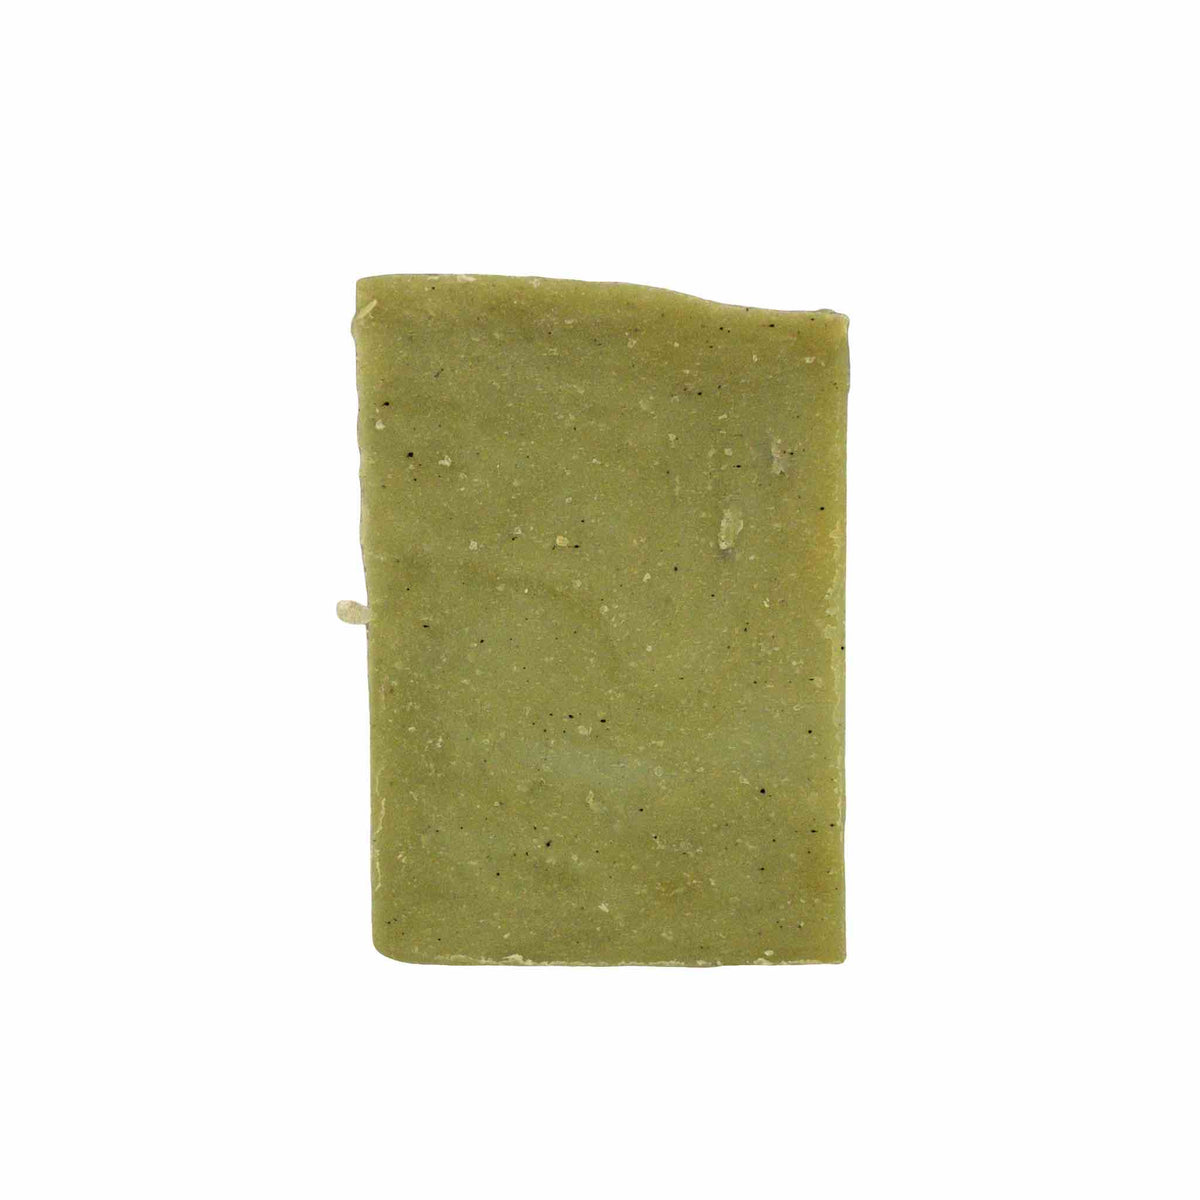 West Indian Lime (Tablet Plain)